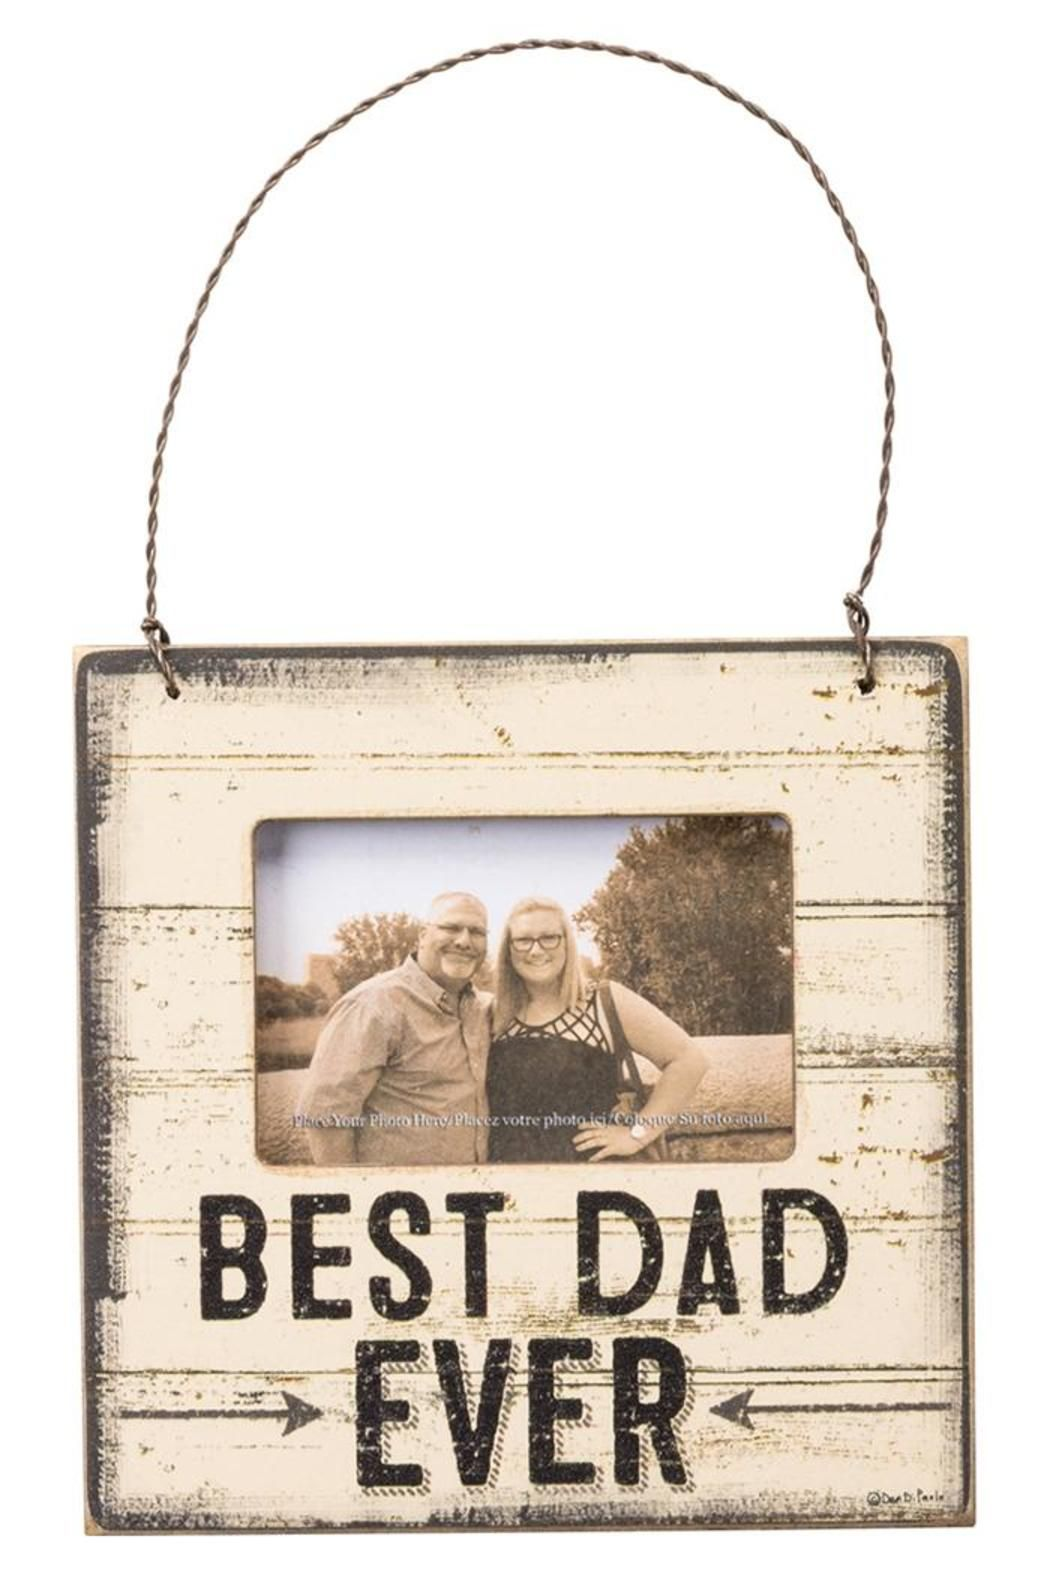 Primitives by Kathy Best Dad Frame | Wire hangers, Vintage designs ...